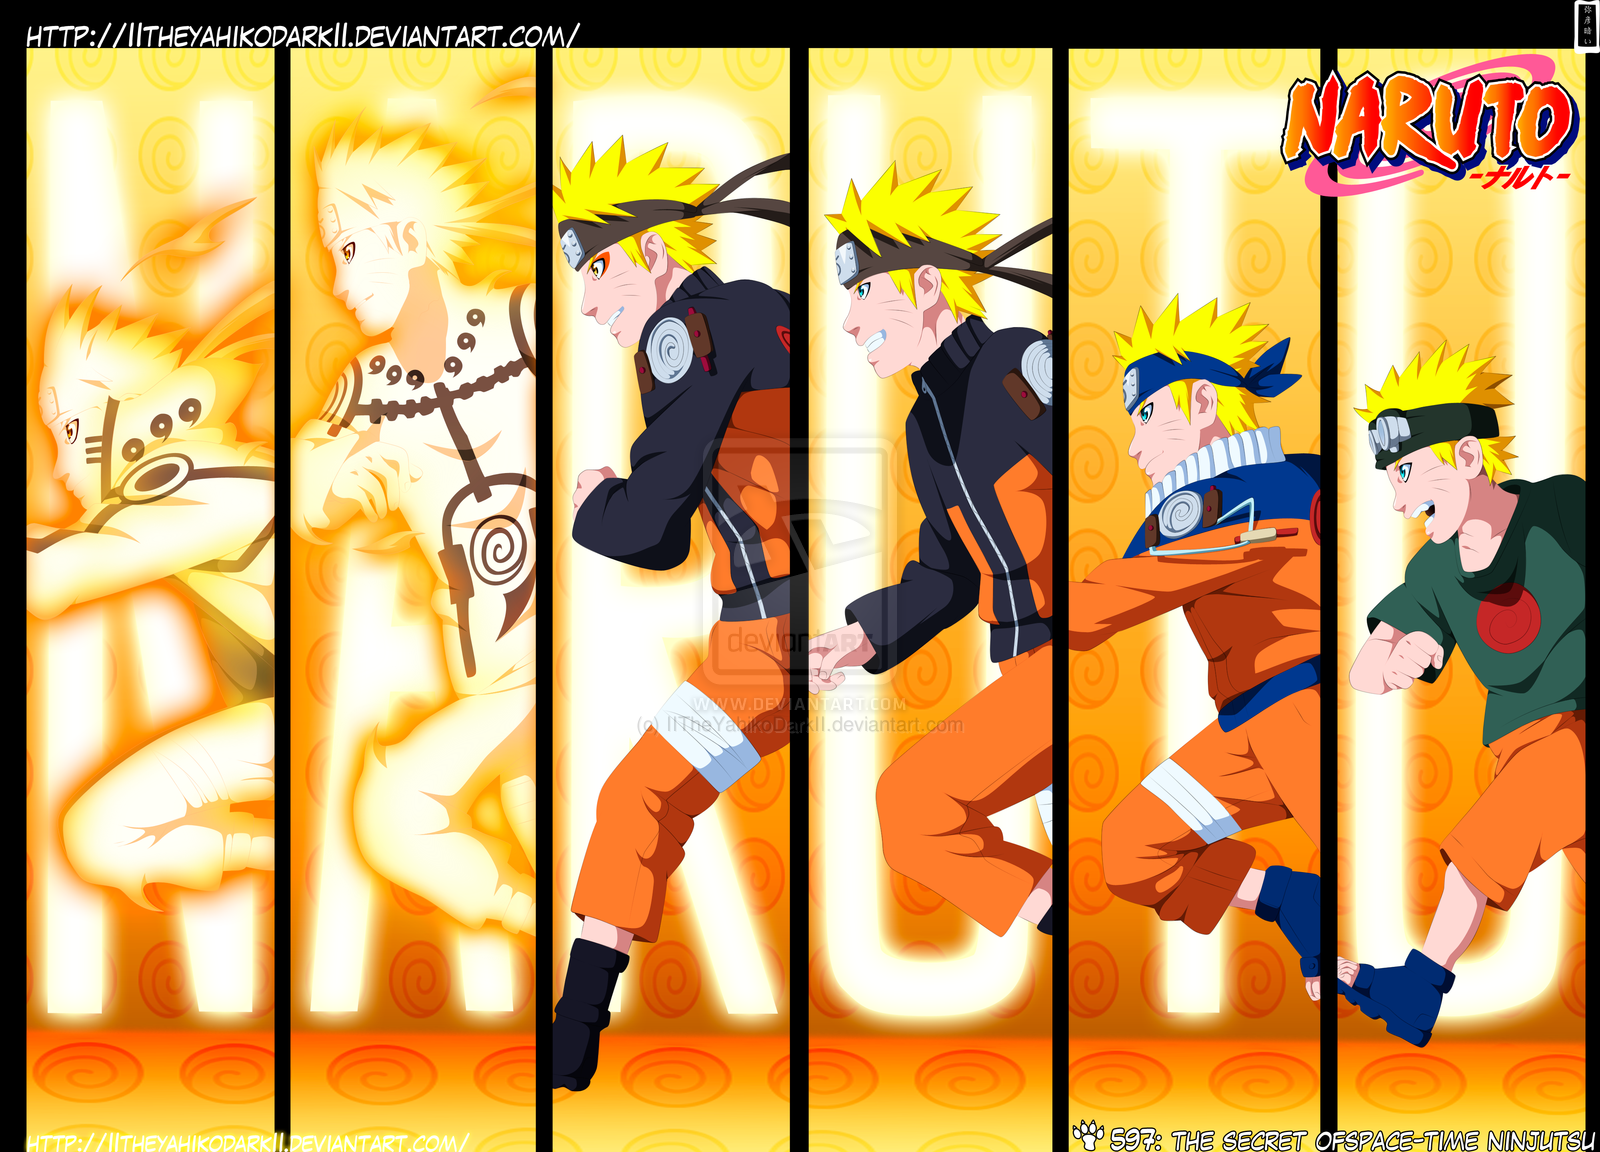 Naruto-evoliution-naruto-33413374-1600-1152